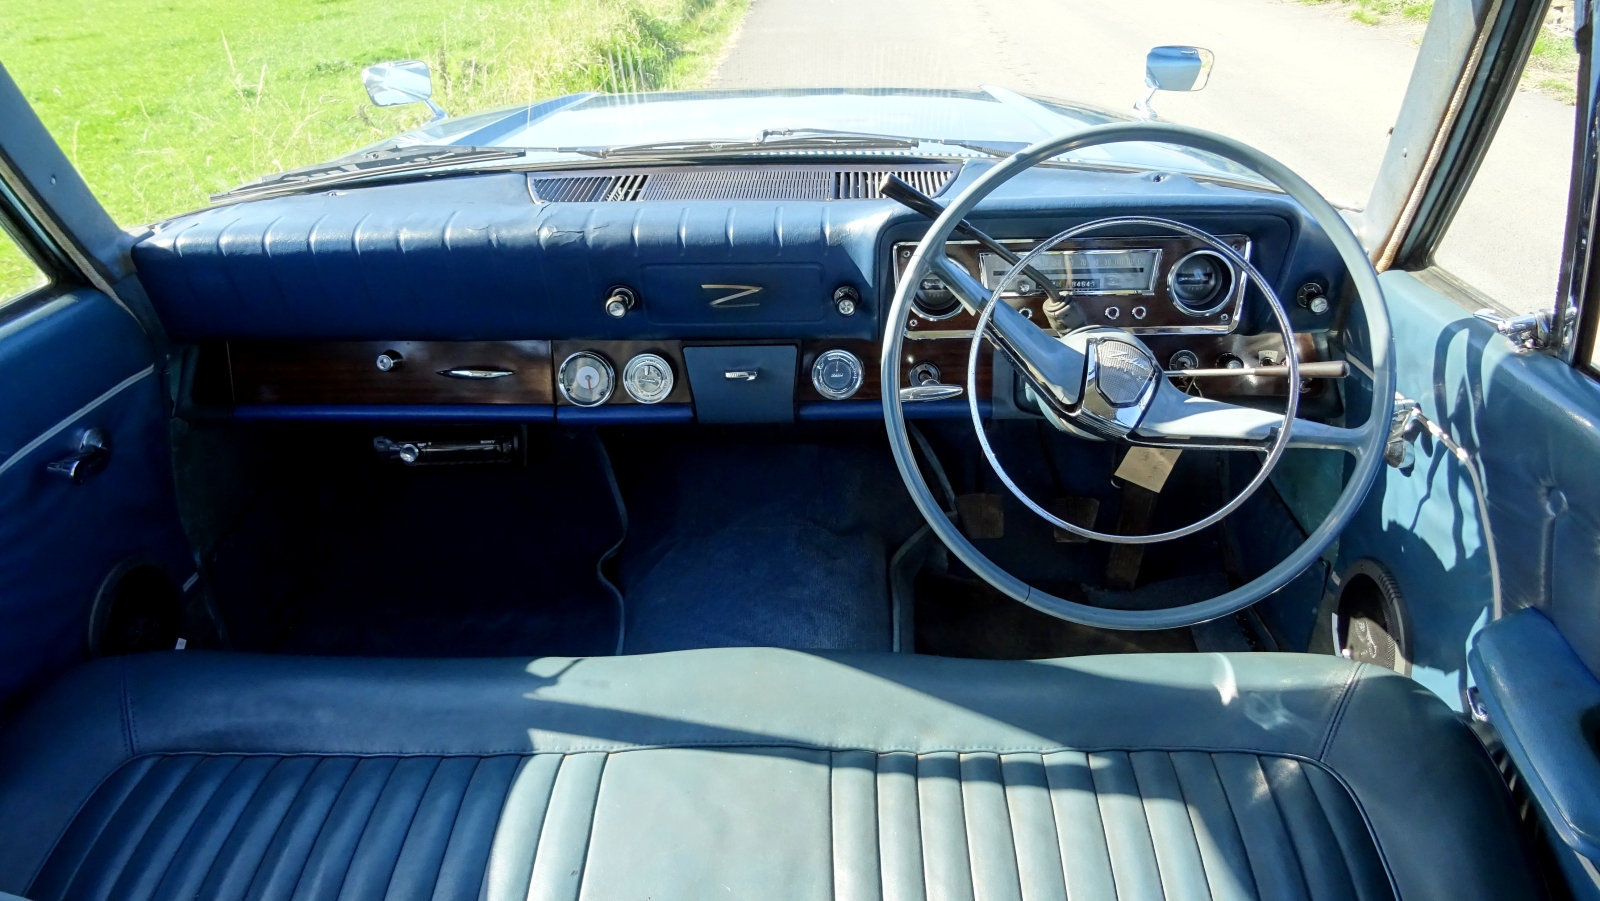 1966 FORD ZODIAC MK3 STUNNING DEEP BLUE PAINT & SPARKLING CHROME For Sale (picture 6 of 6)